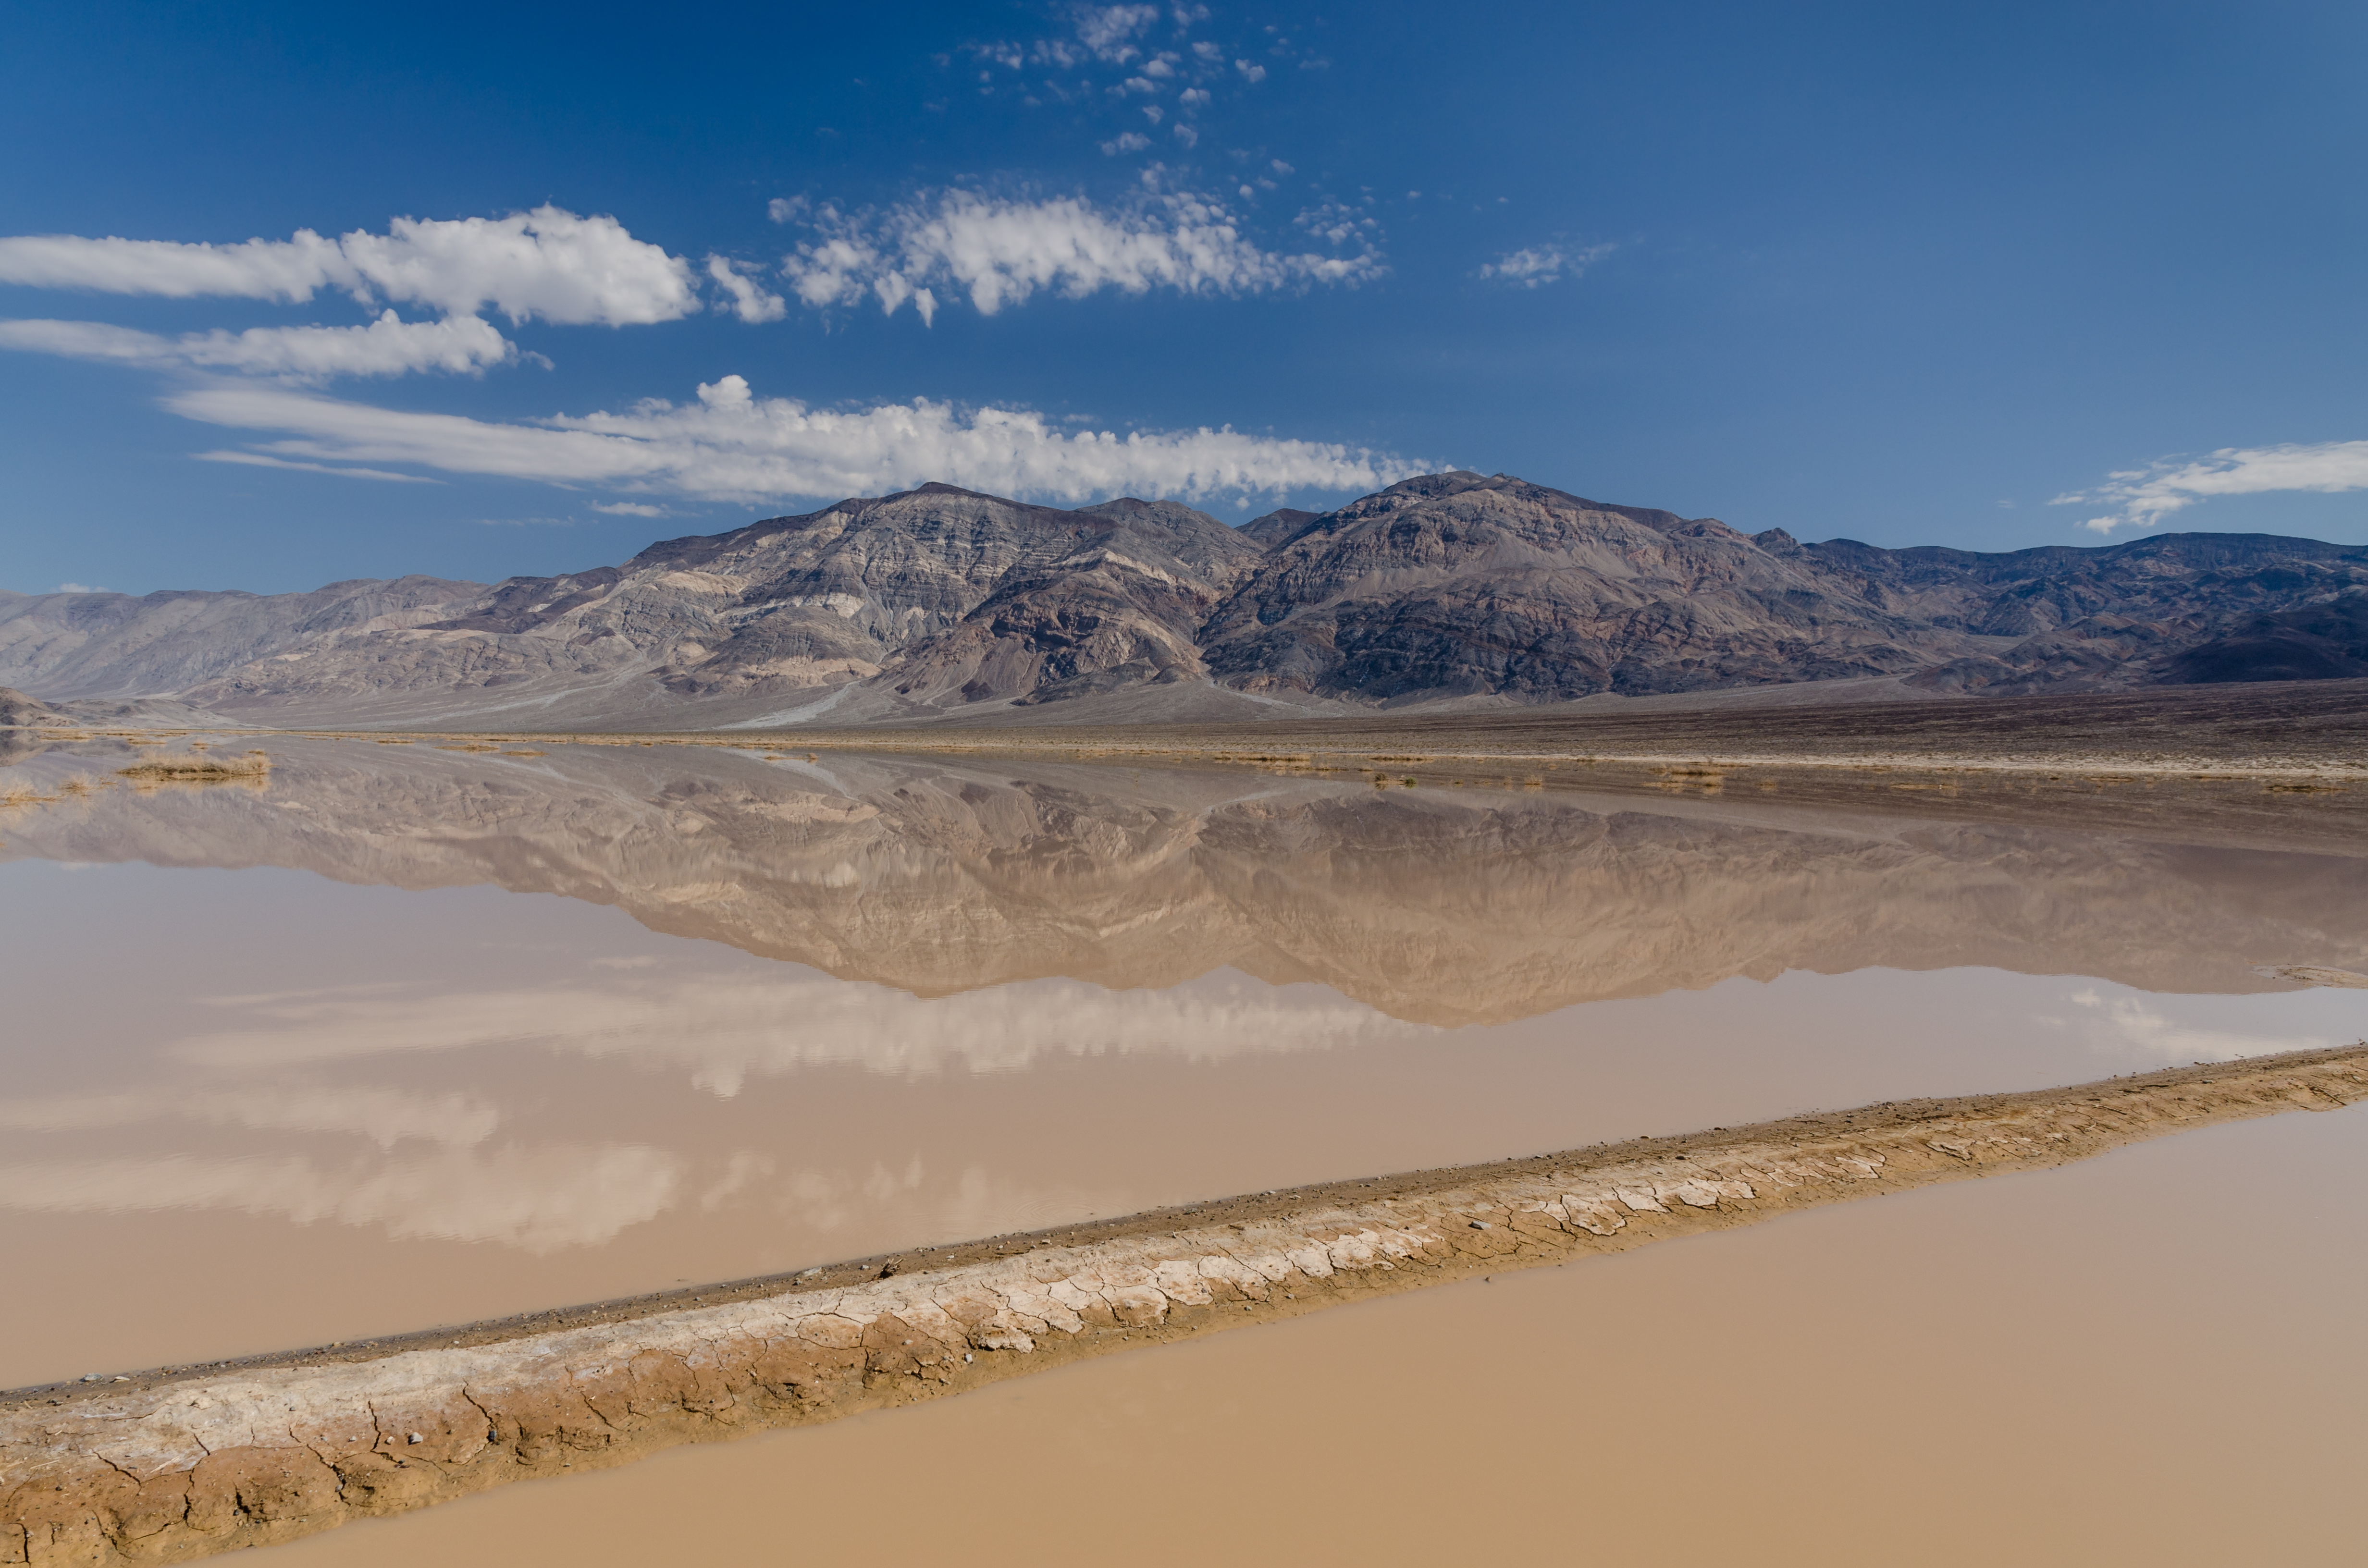 death_valley_exit_sr190_view_panamint_butt_flash_flood_2013